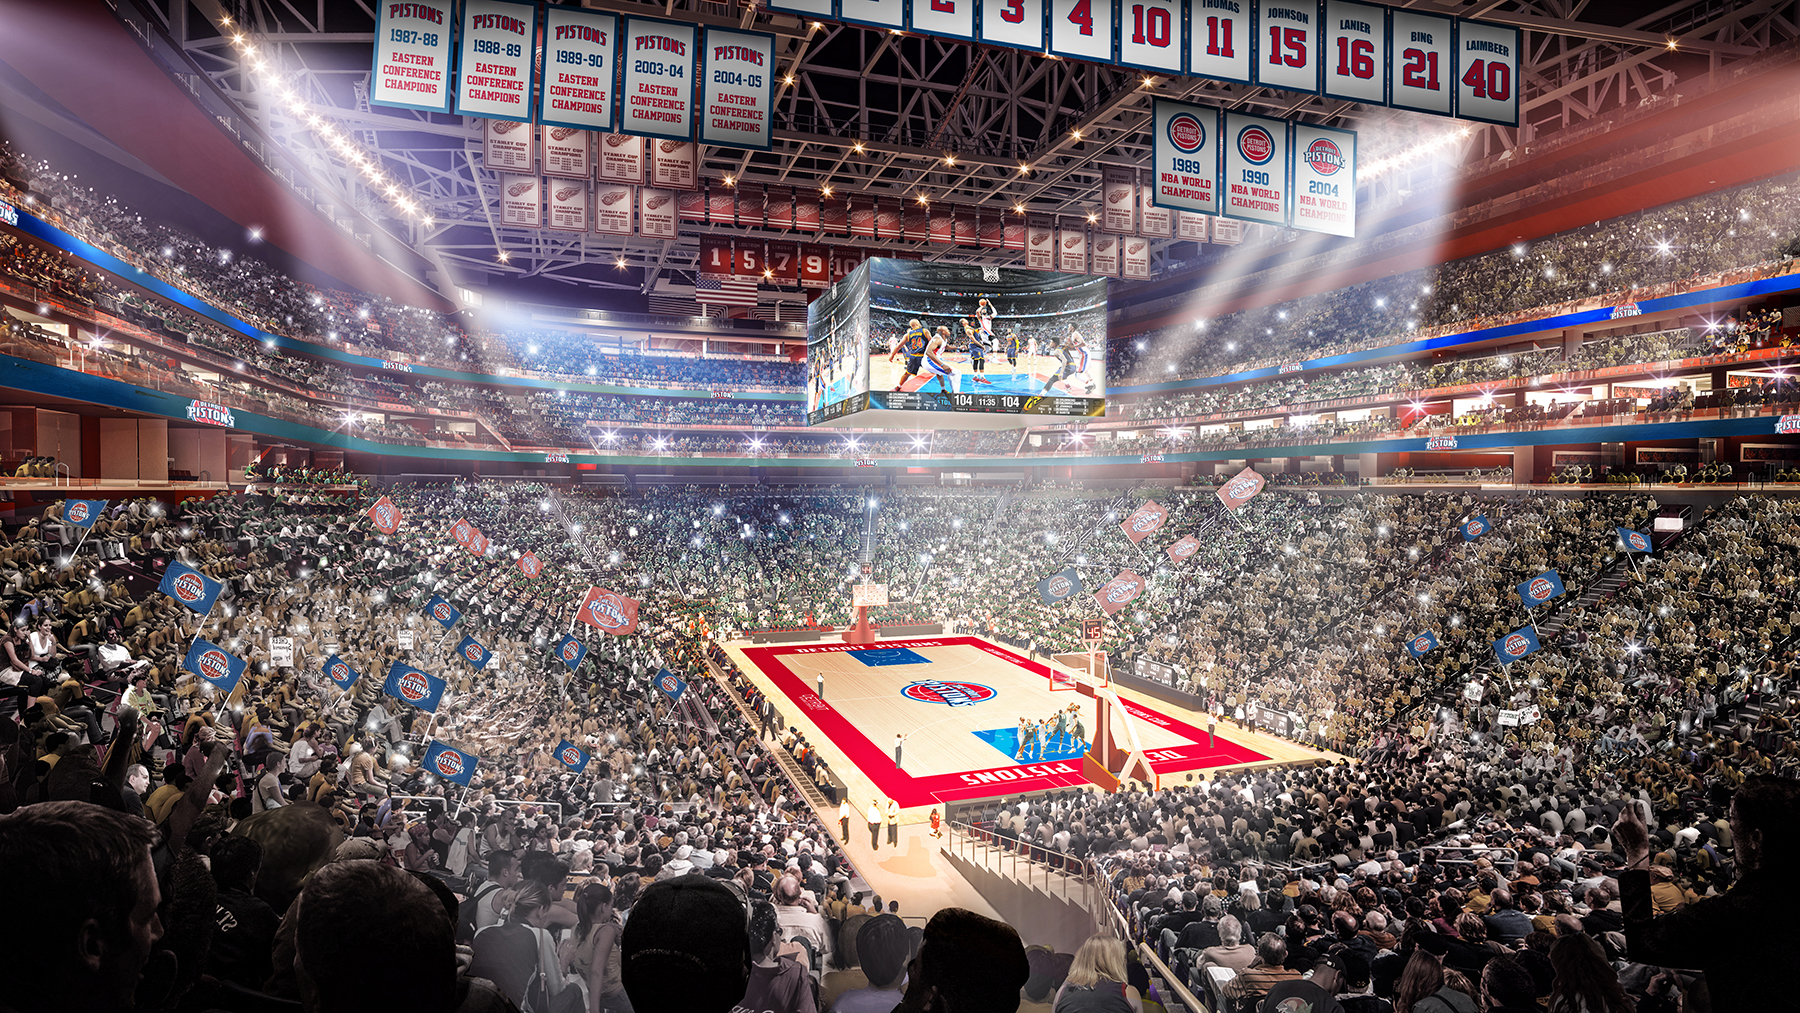 Here's what Detroit basketball will look like in Detroit - Curbed Detroit